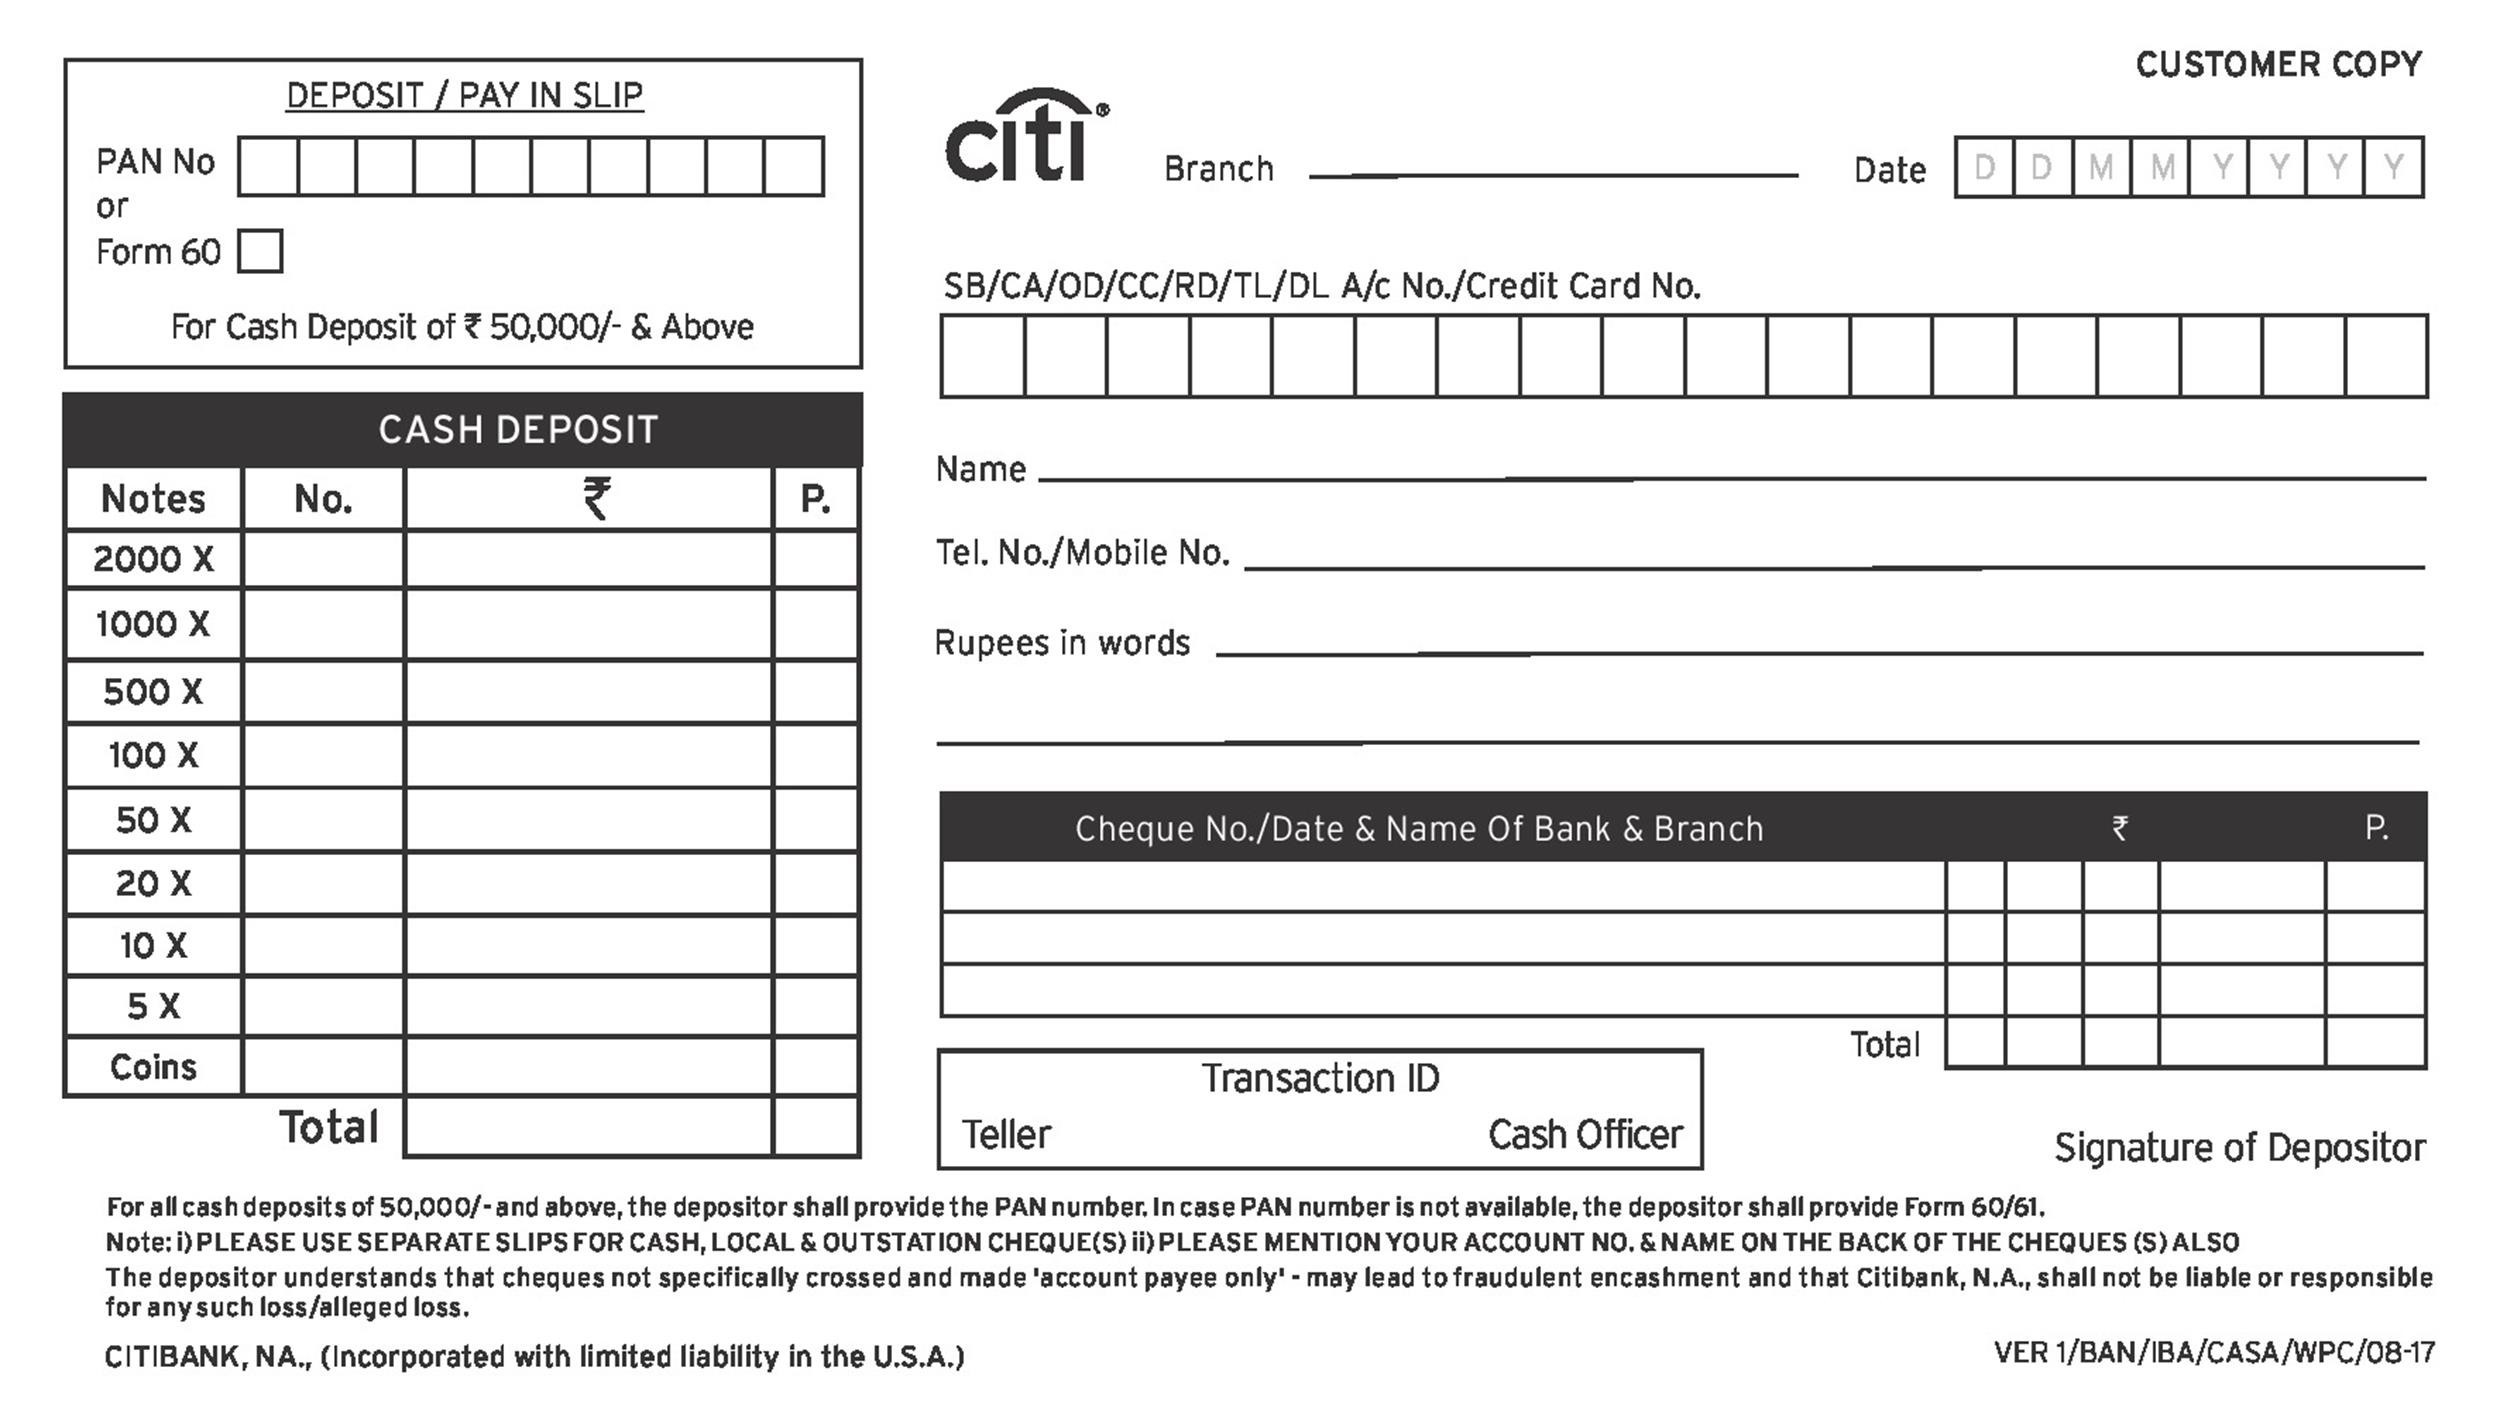 cash deposit form template  11 Bank Deposit Slip Templates & Examples ᐅ Template Lab